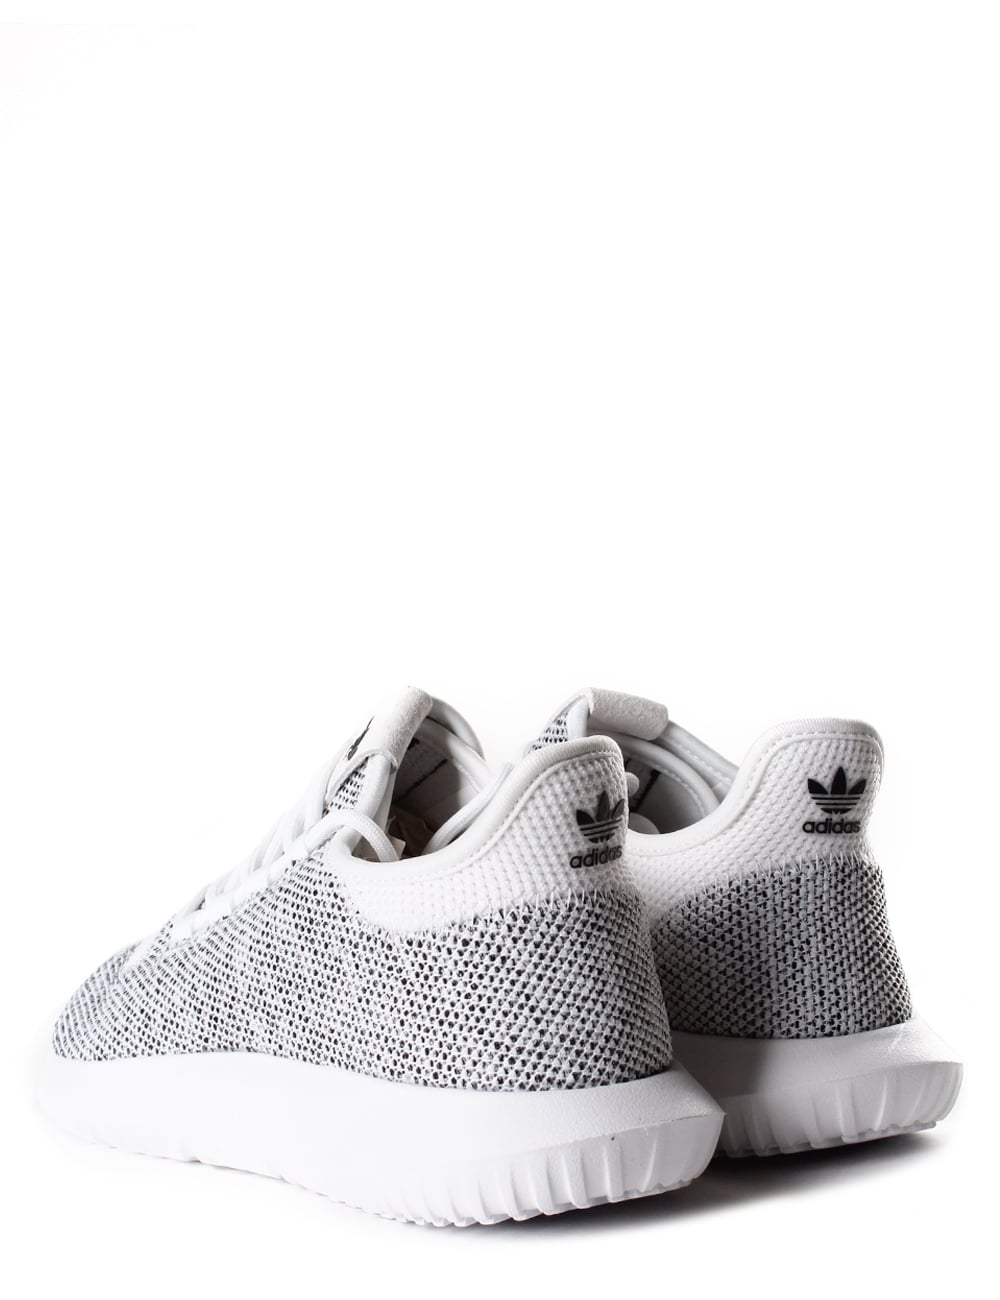 sports shoes e57a0 0d04d Adidas Women's Tubular Shadow Knit Trainer